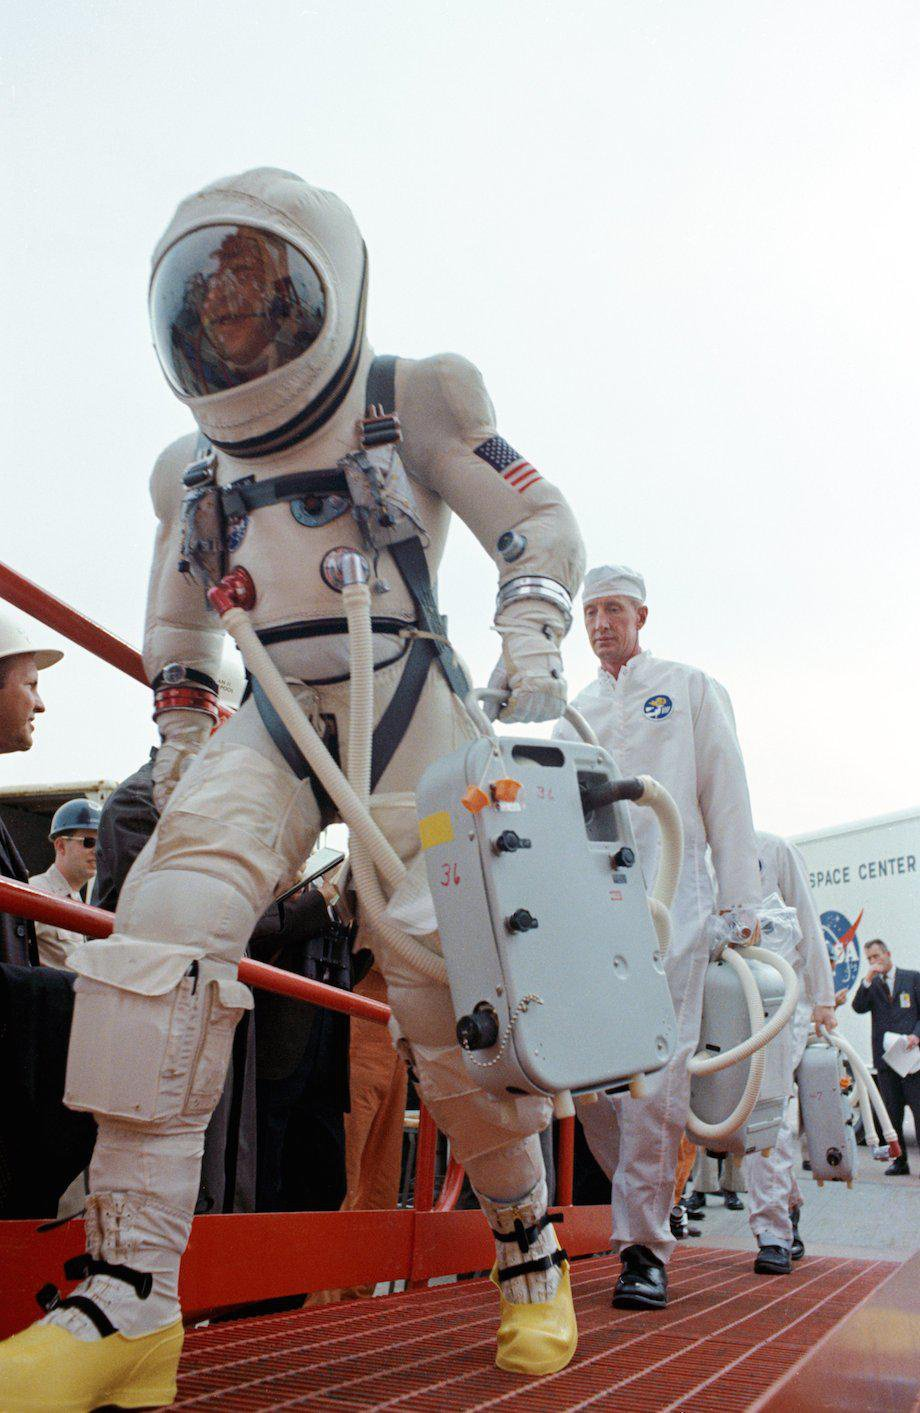 check-out-the-evolution-of-the-space-suit-41-hq-photos-15